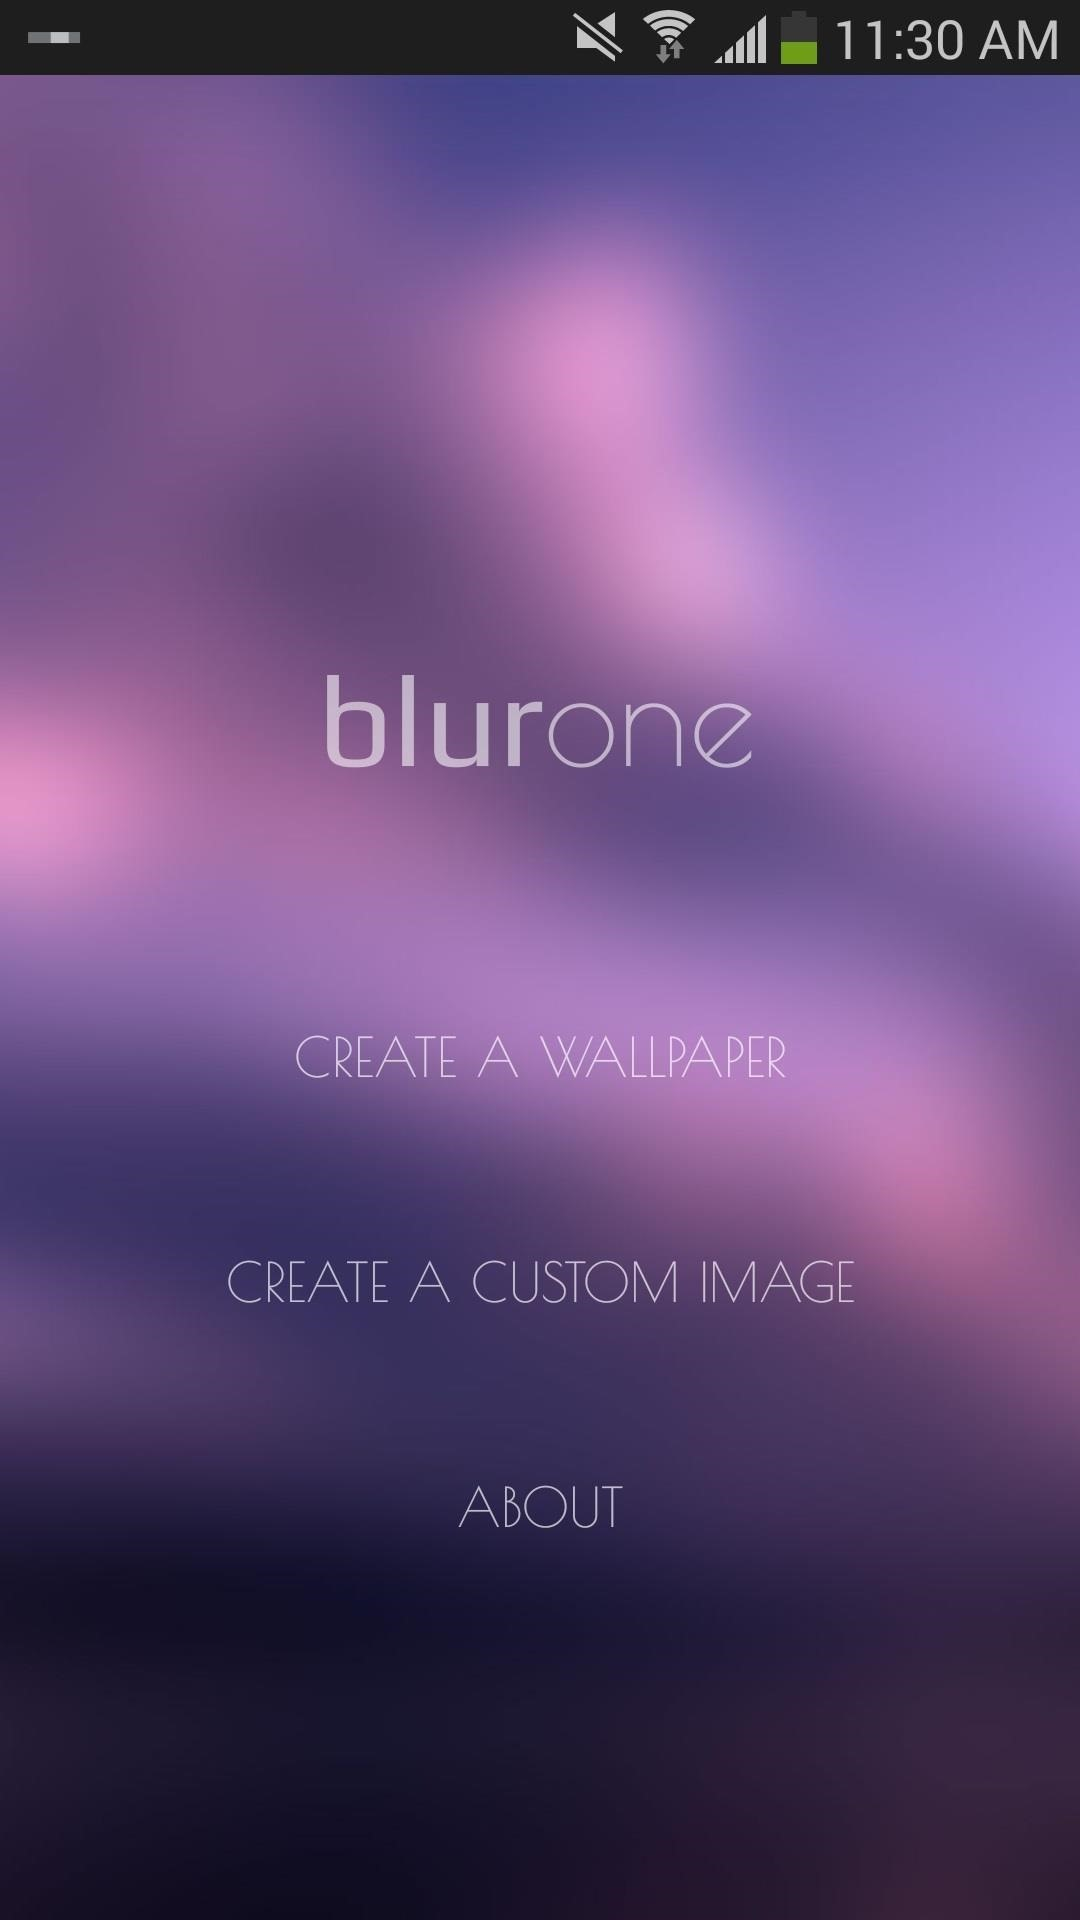 How to Add iOS 7-Style Blur Effects to Backgrounds on Your Samsung Galaxy Note 3